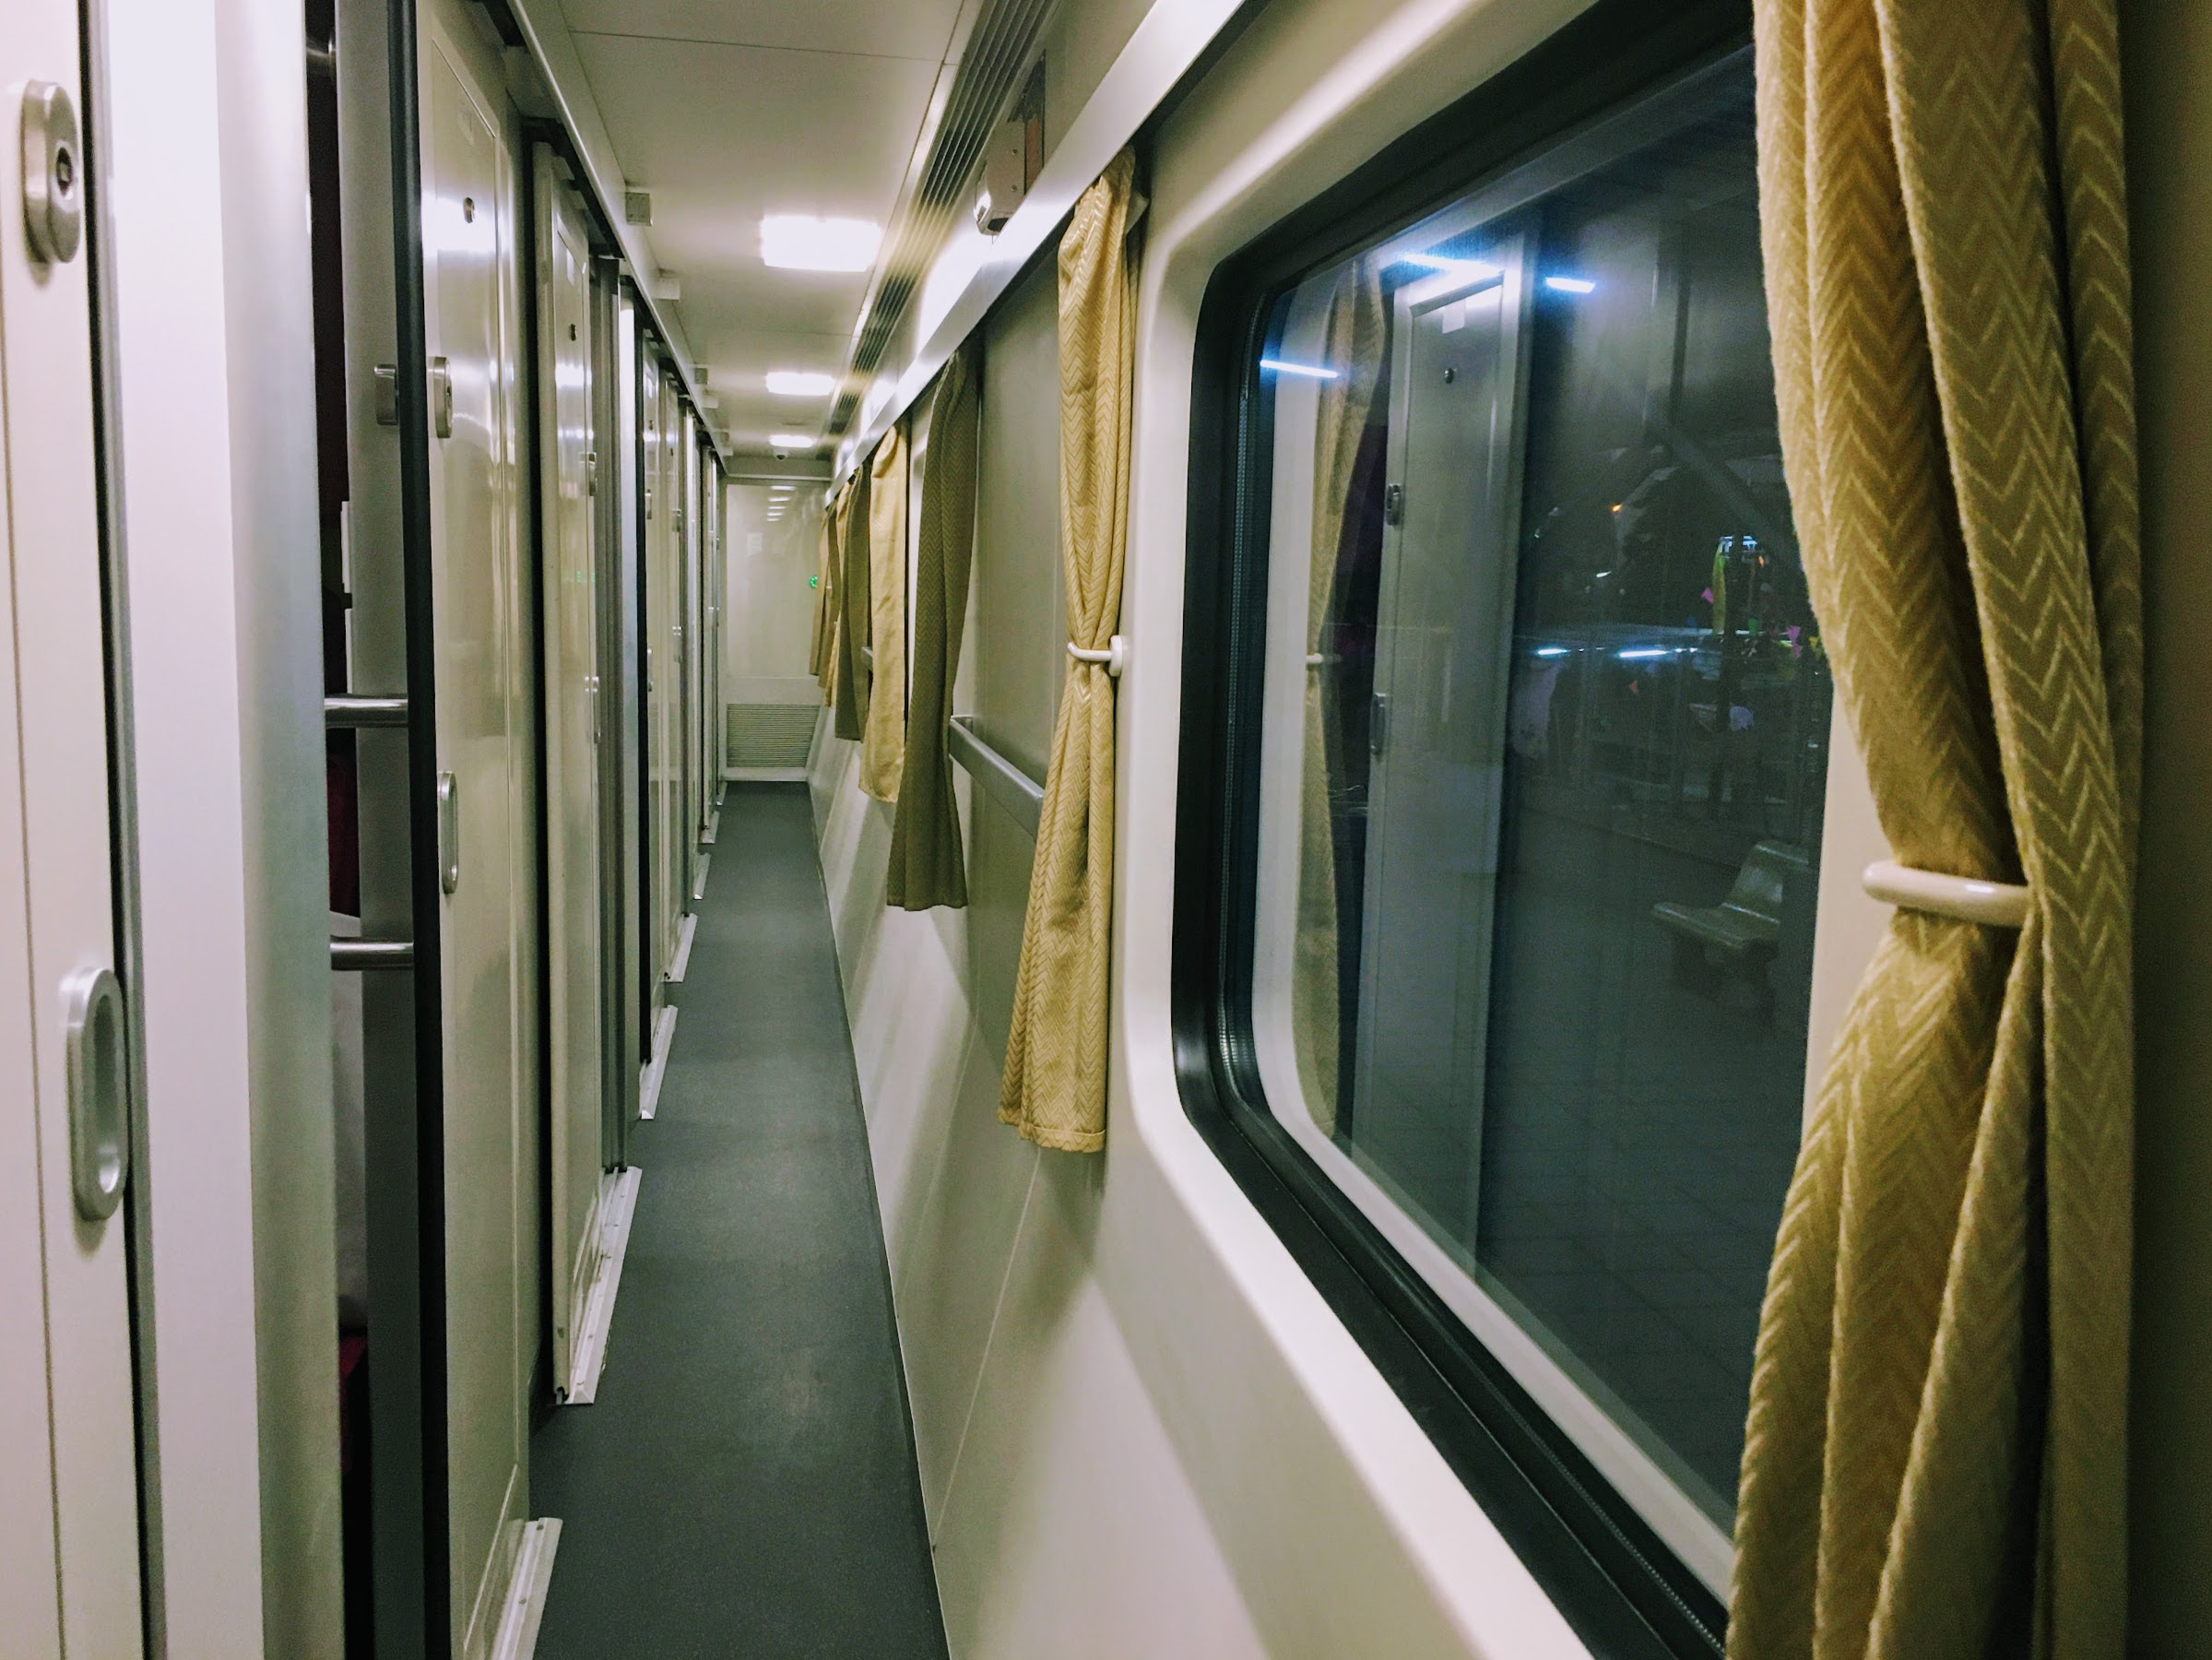 Cabin in the train, experience on Thailand's first class train